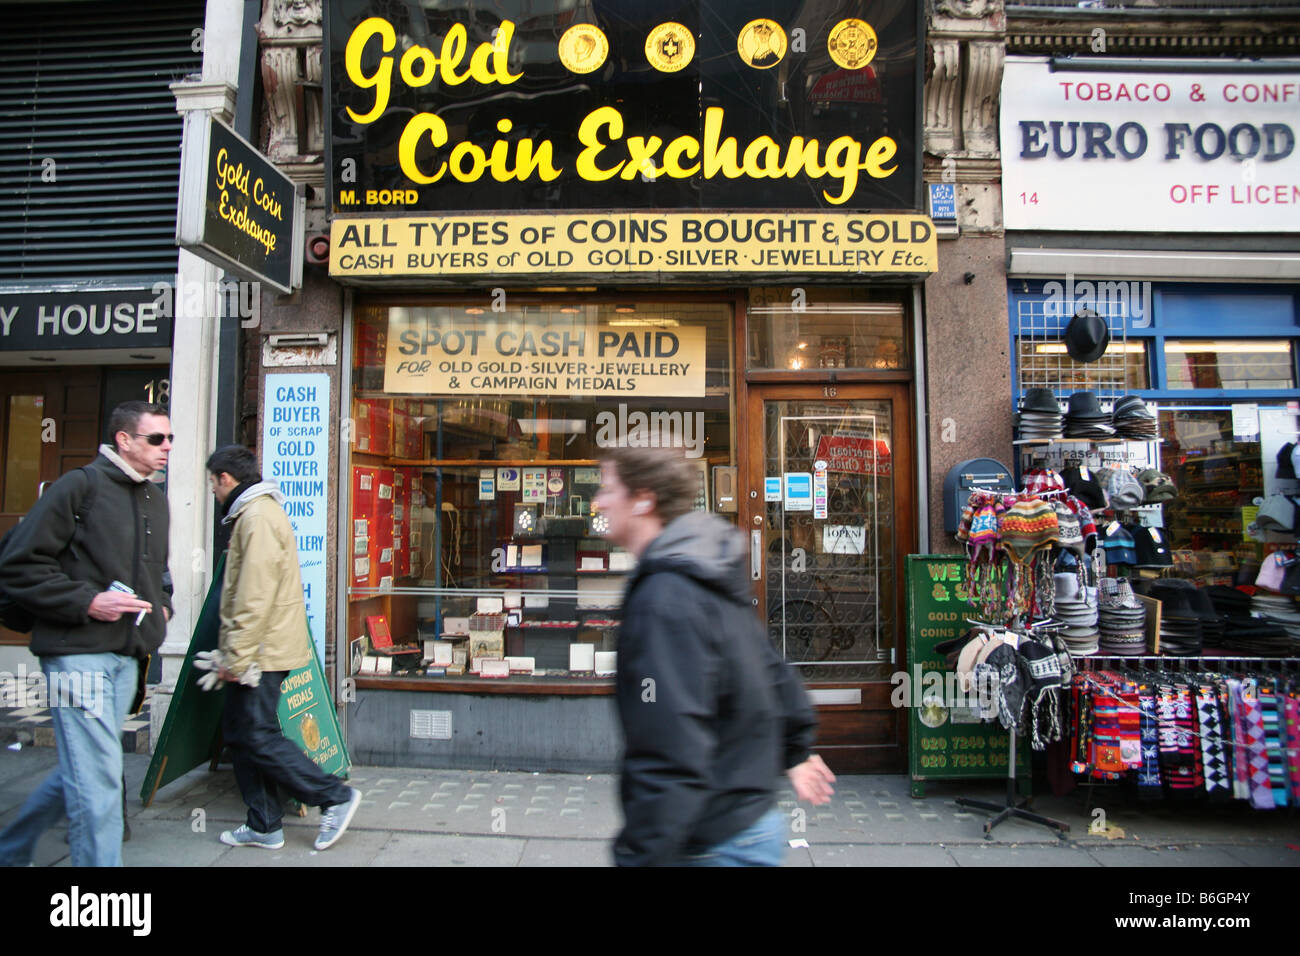 Gold coin shop in Central London - Stock Image